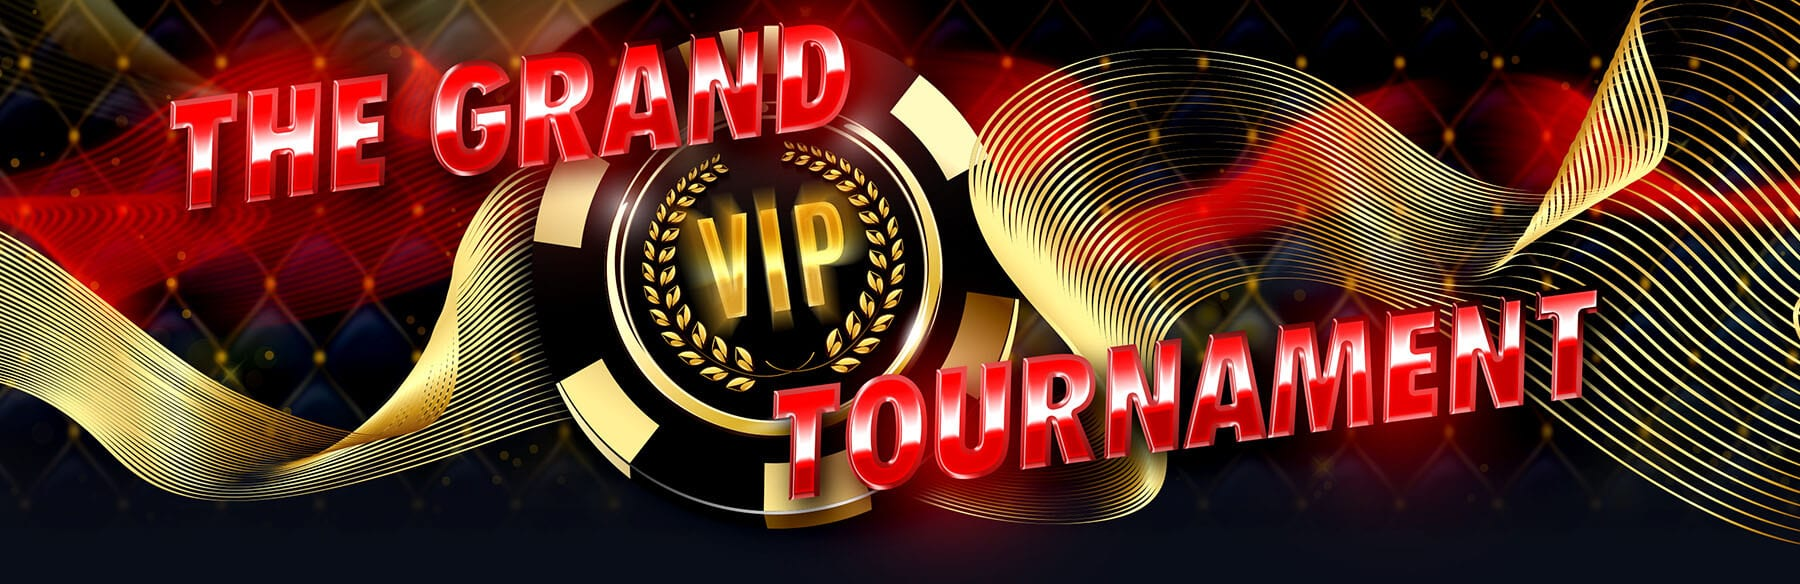 7 Spins Casino Bonuses | 7Spins Stacks of Cash in The Grand VIP Tournament